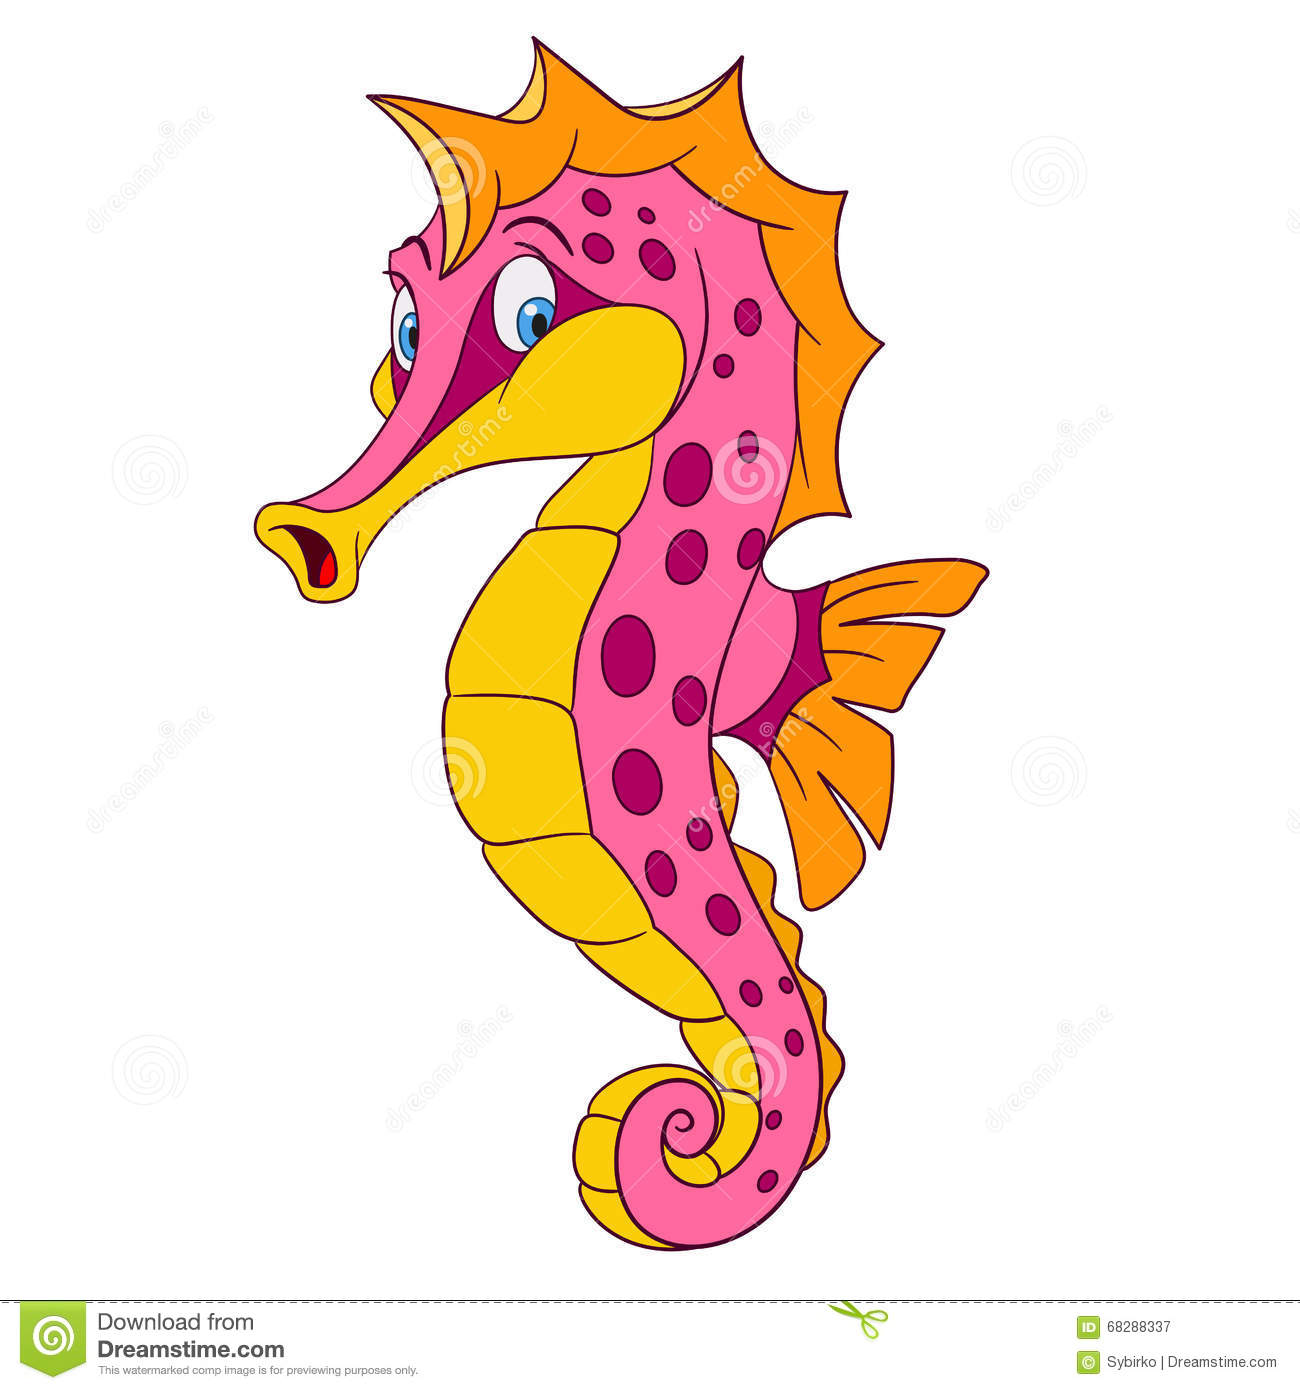 De Dessin Hippocampe Stock Illustrations Vecteurs Clipart